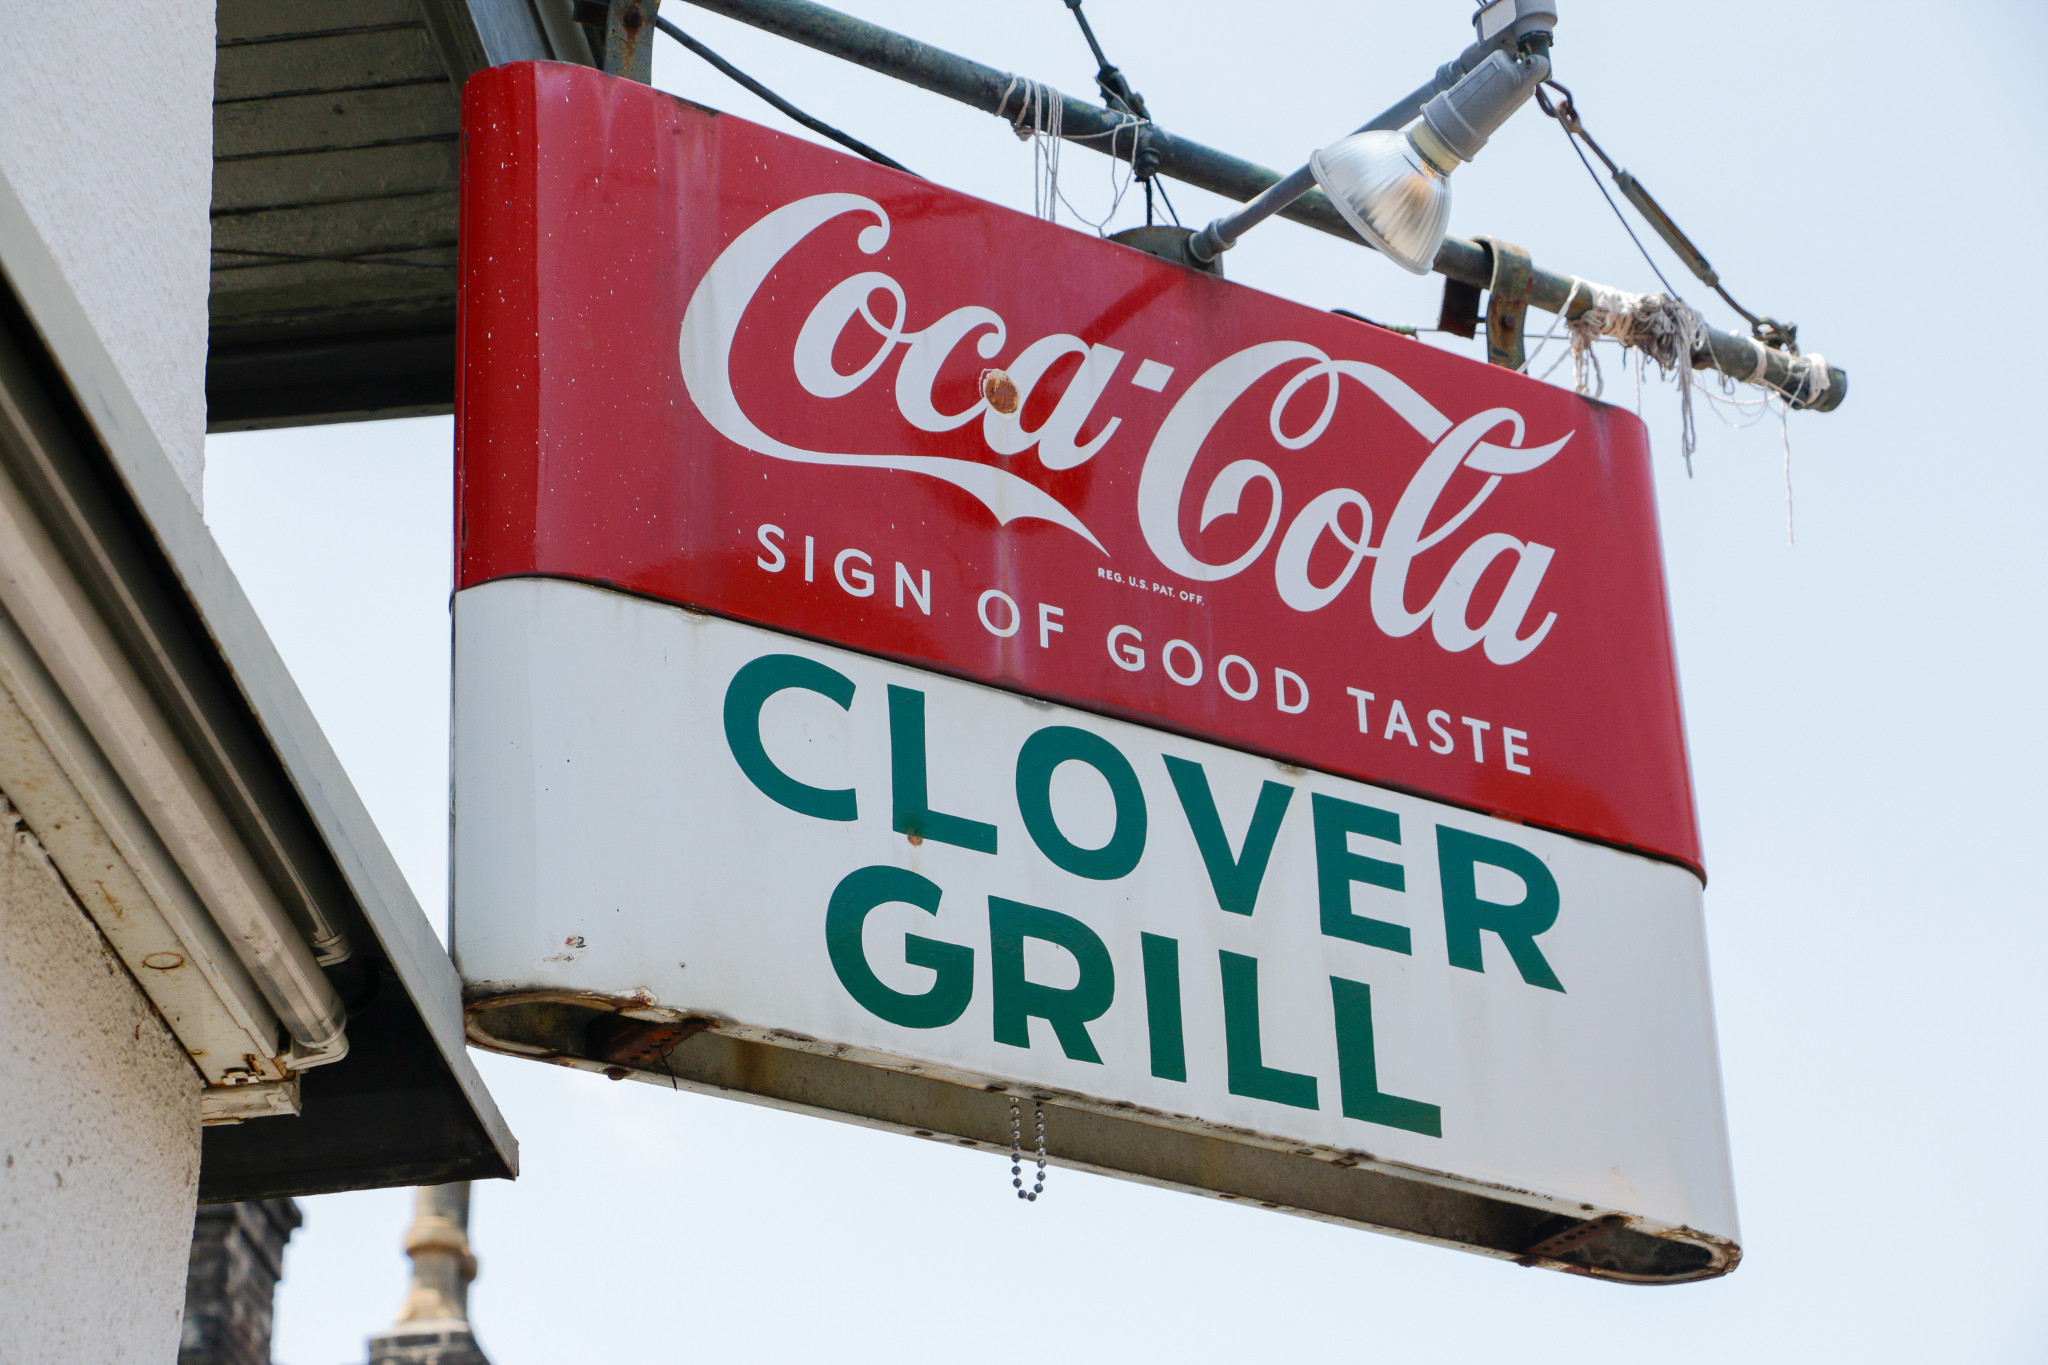 Clover Grill sign - LGBT jackson square